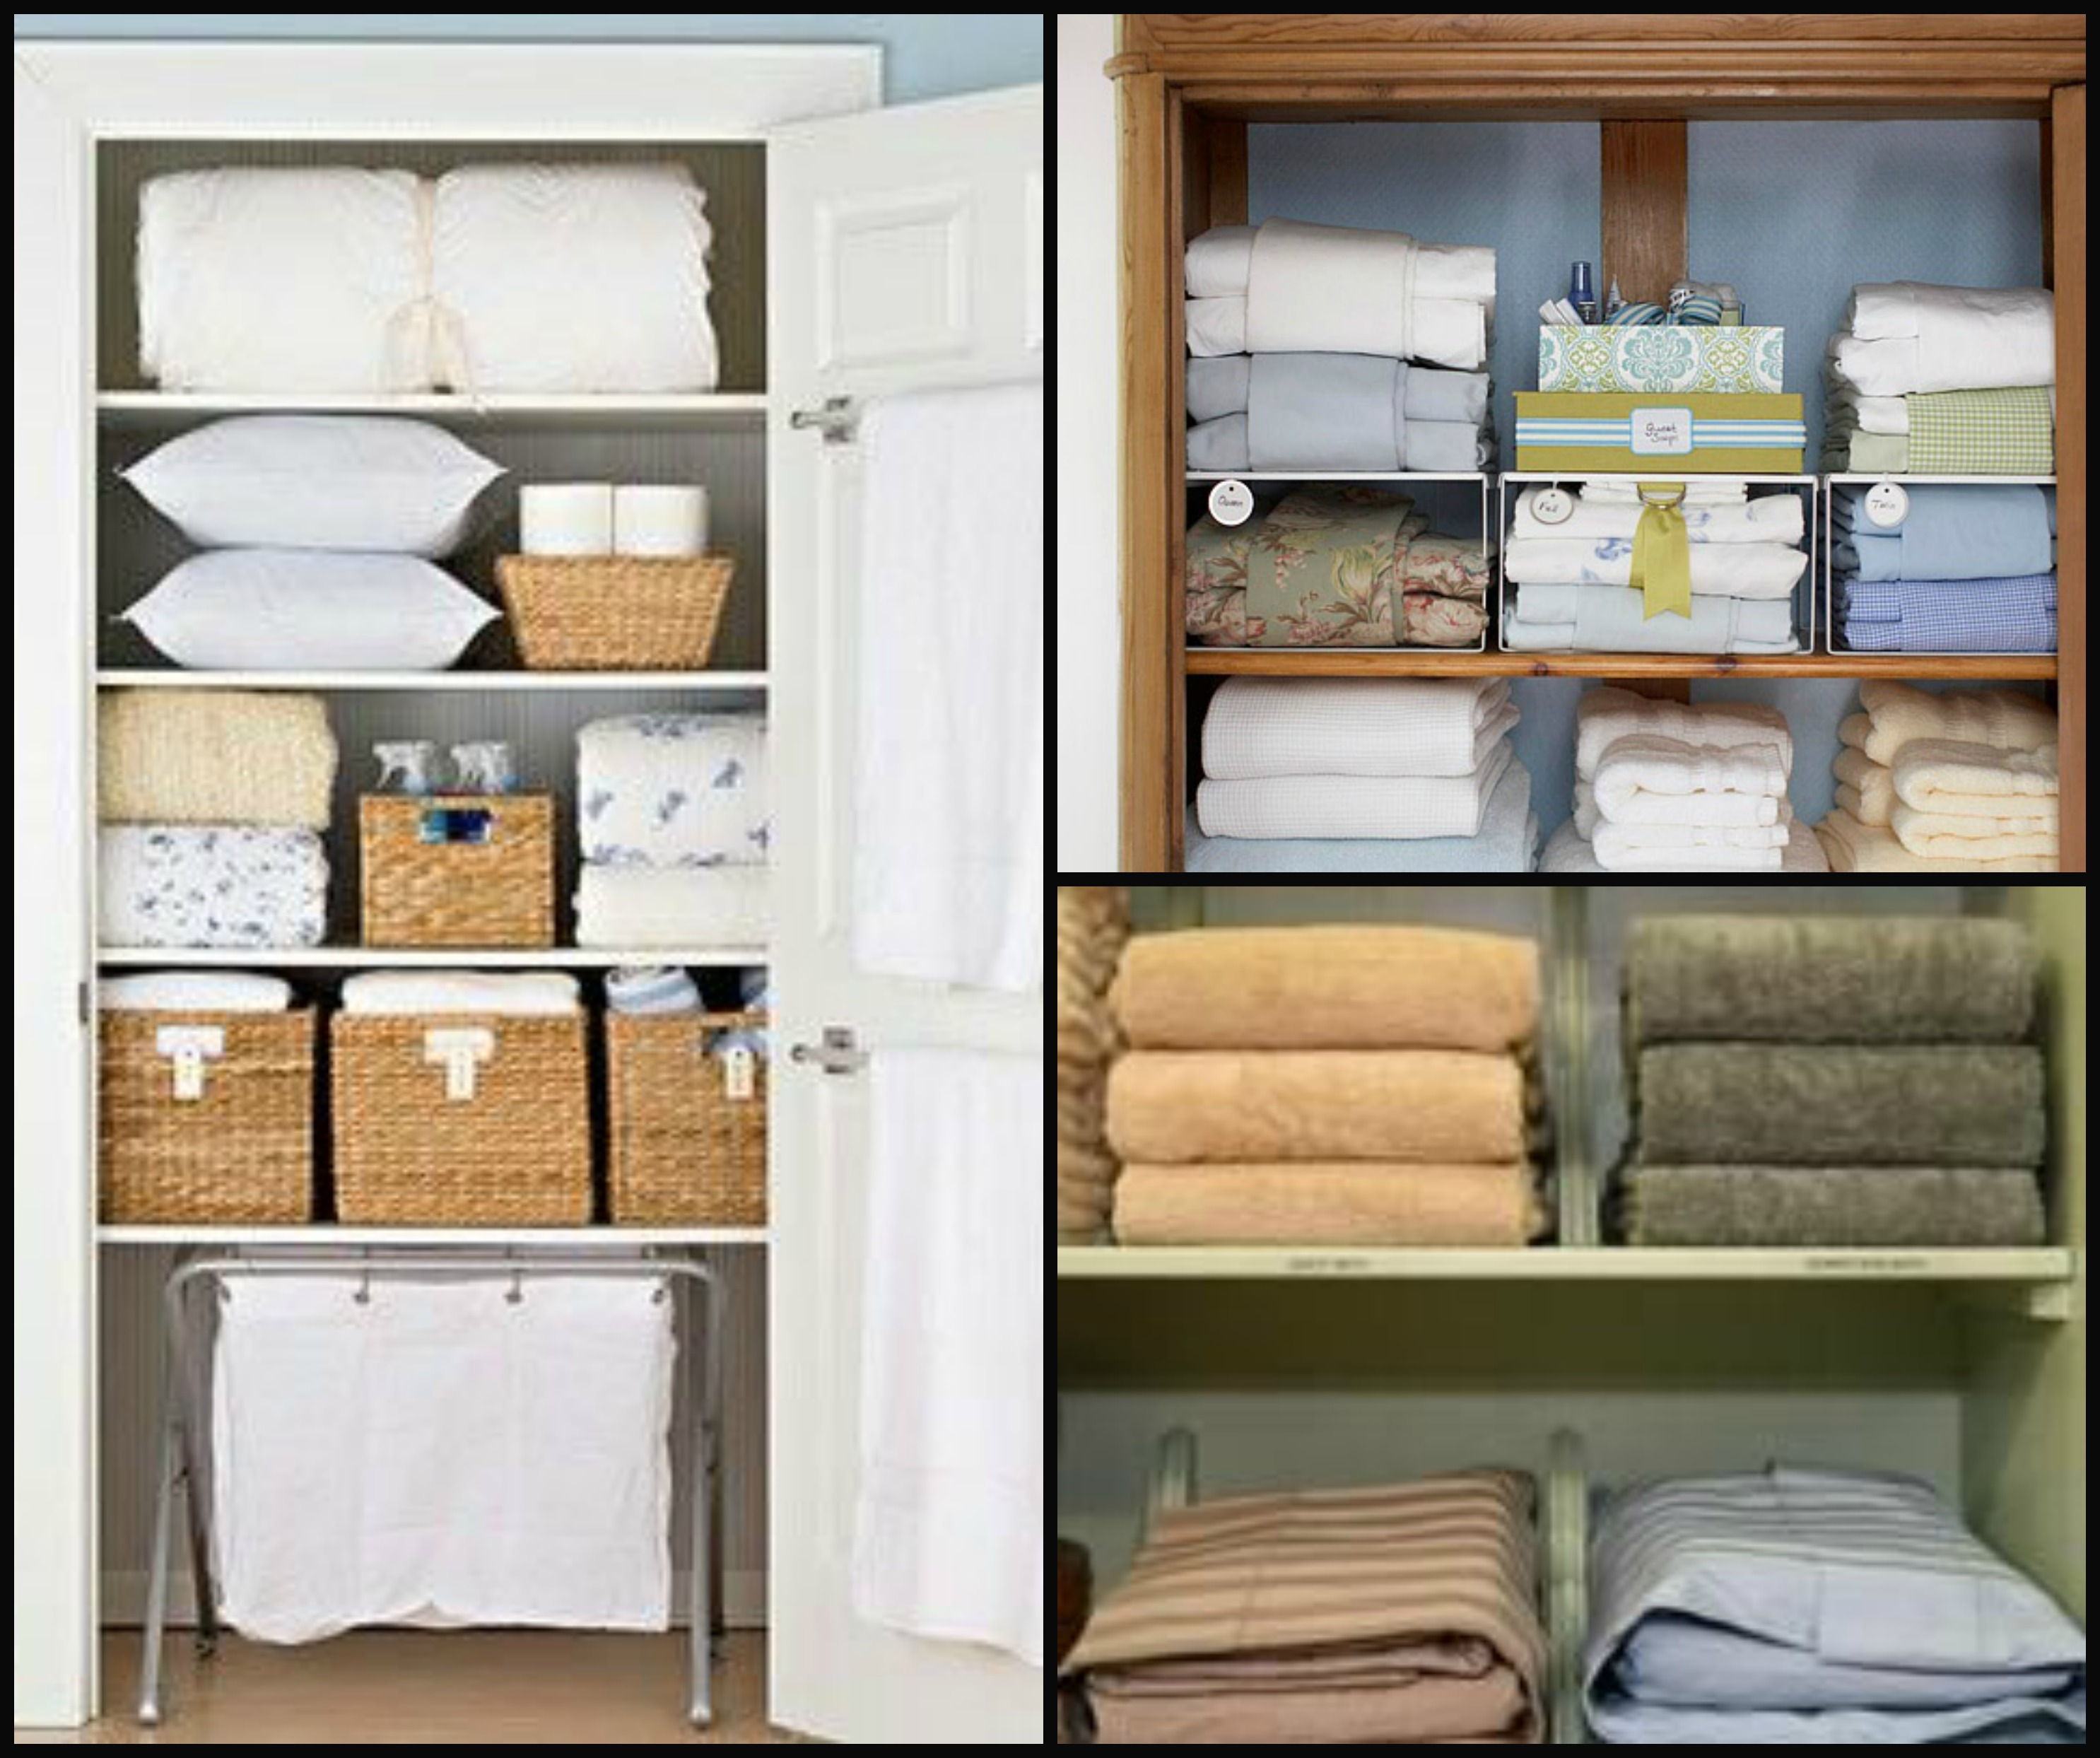 Linen Closet Organizers A Solution To Organize Linens